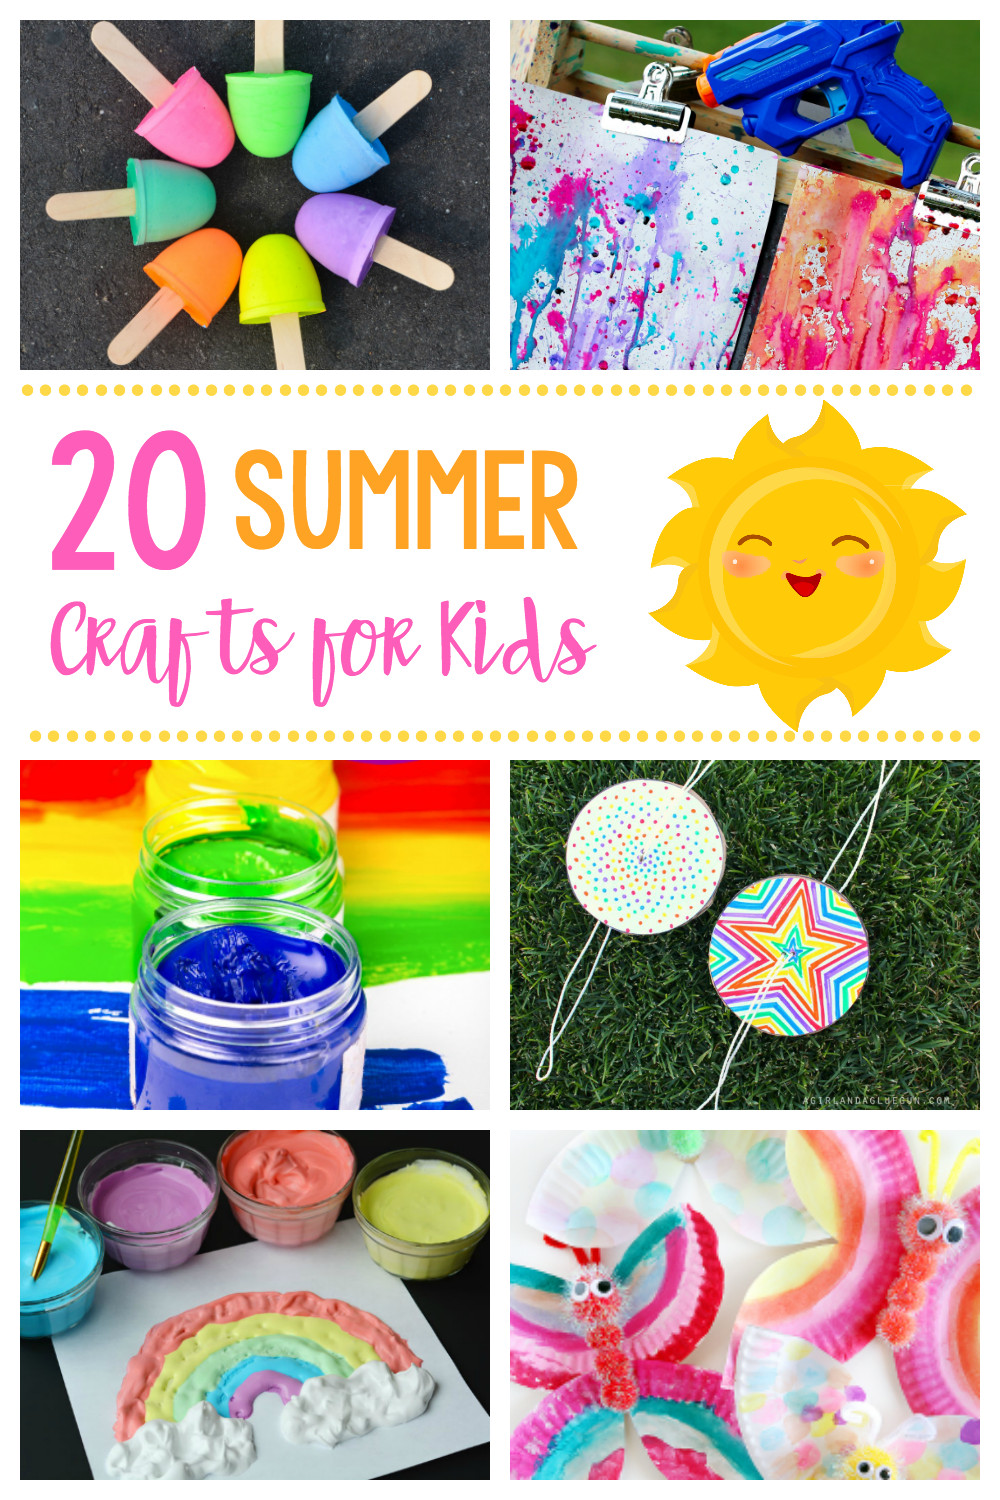 Easy Summer Crafts For Preschoolers  20 Simple & Fun Summer Crafts for Kids